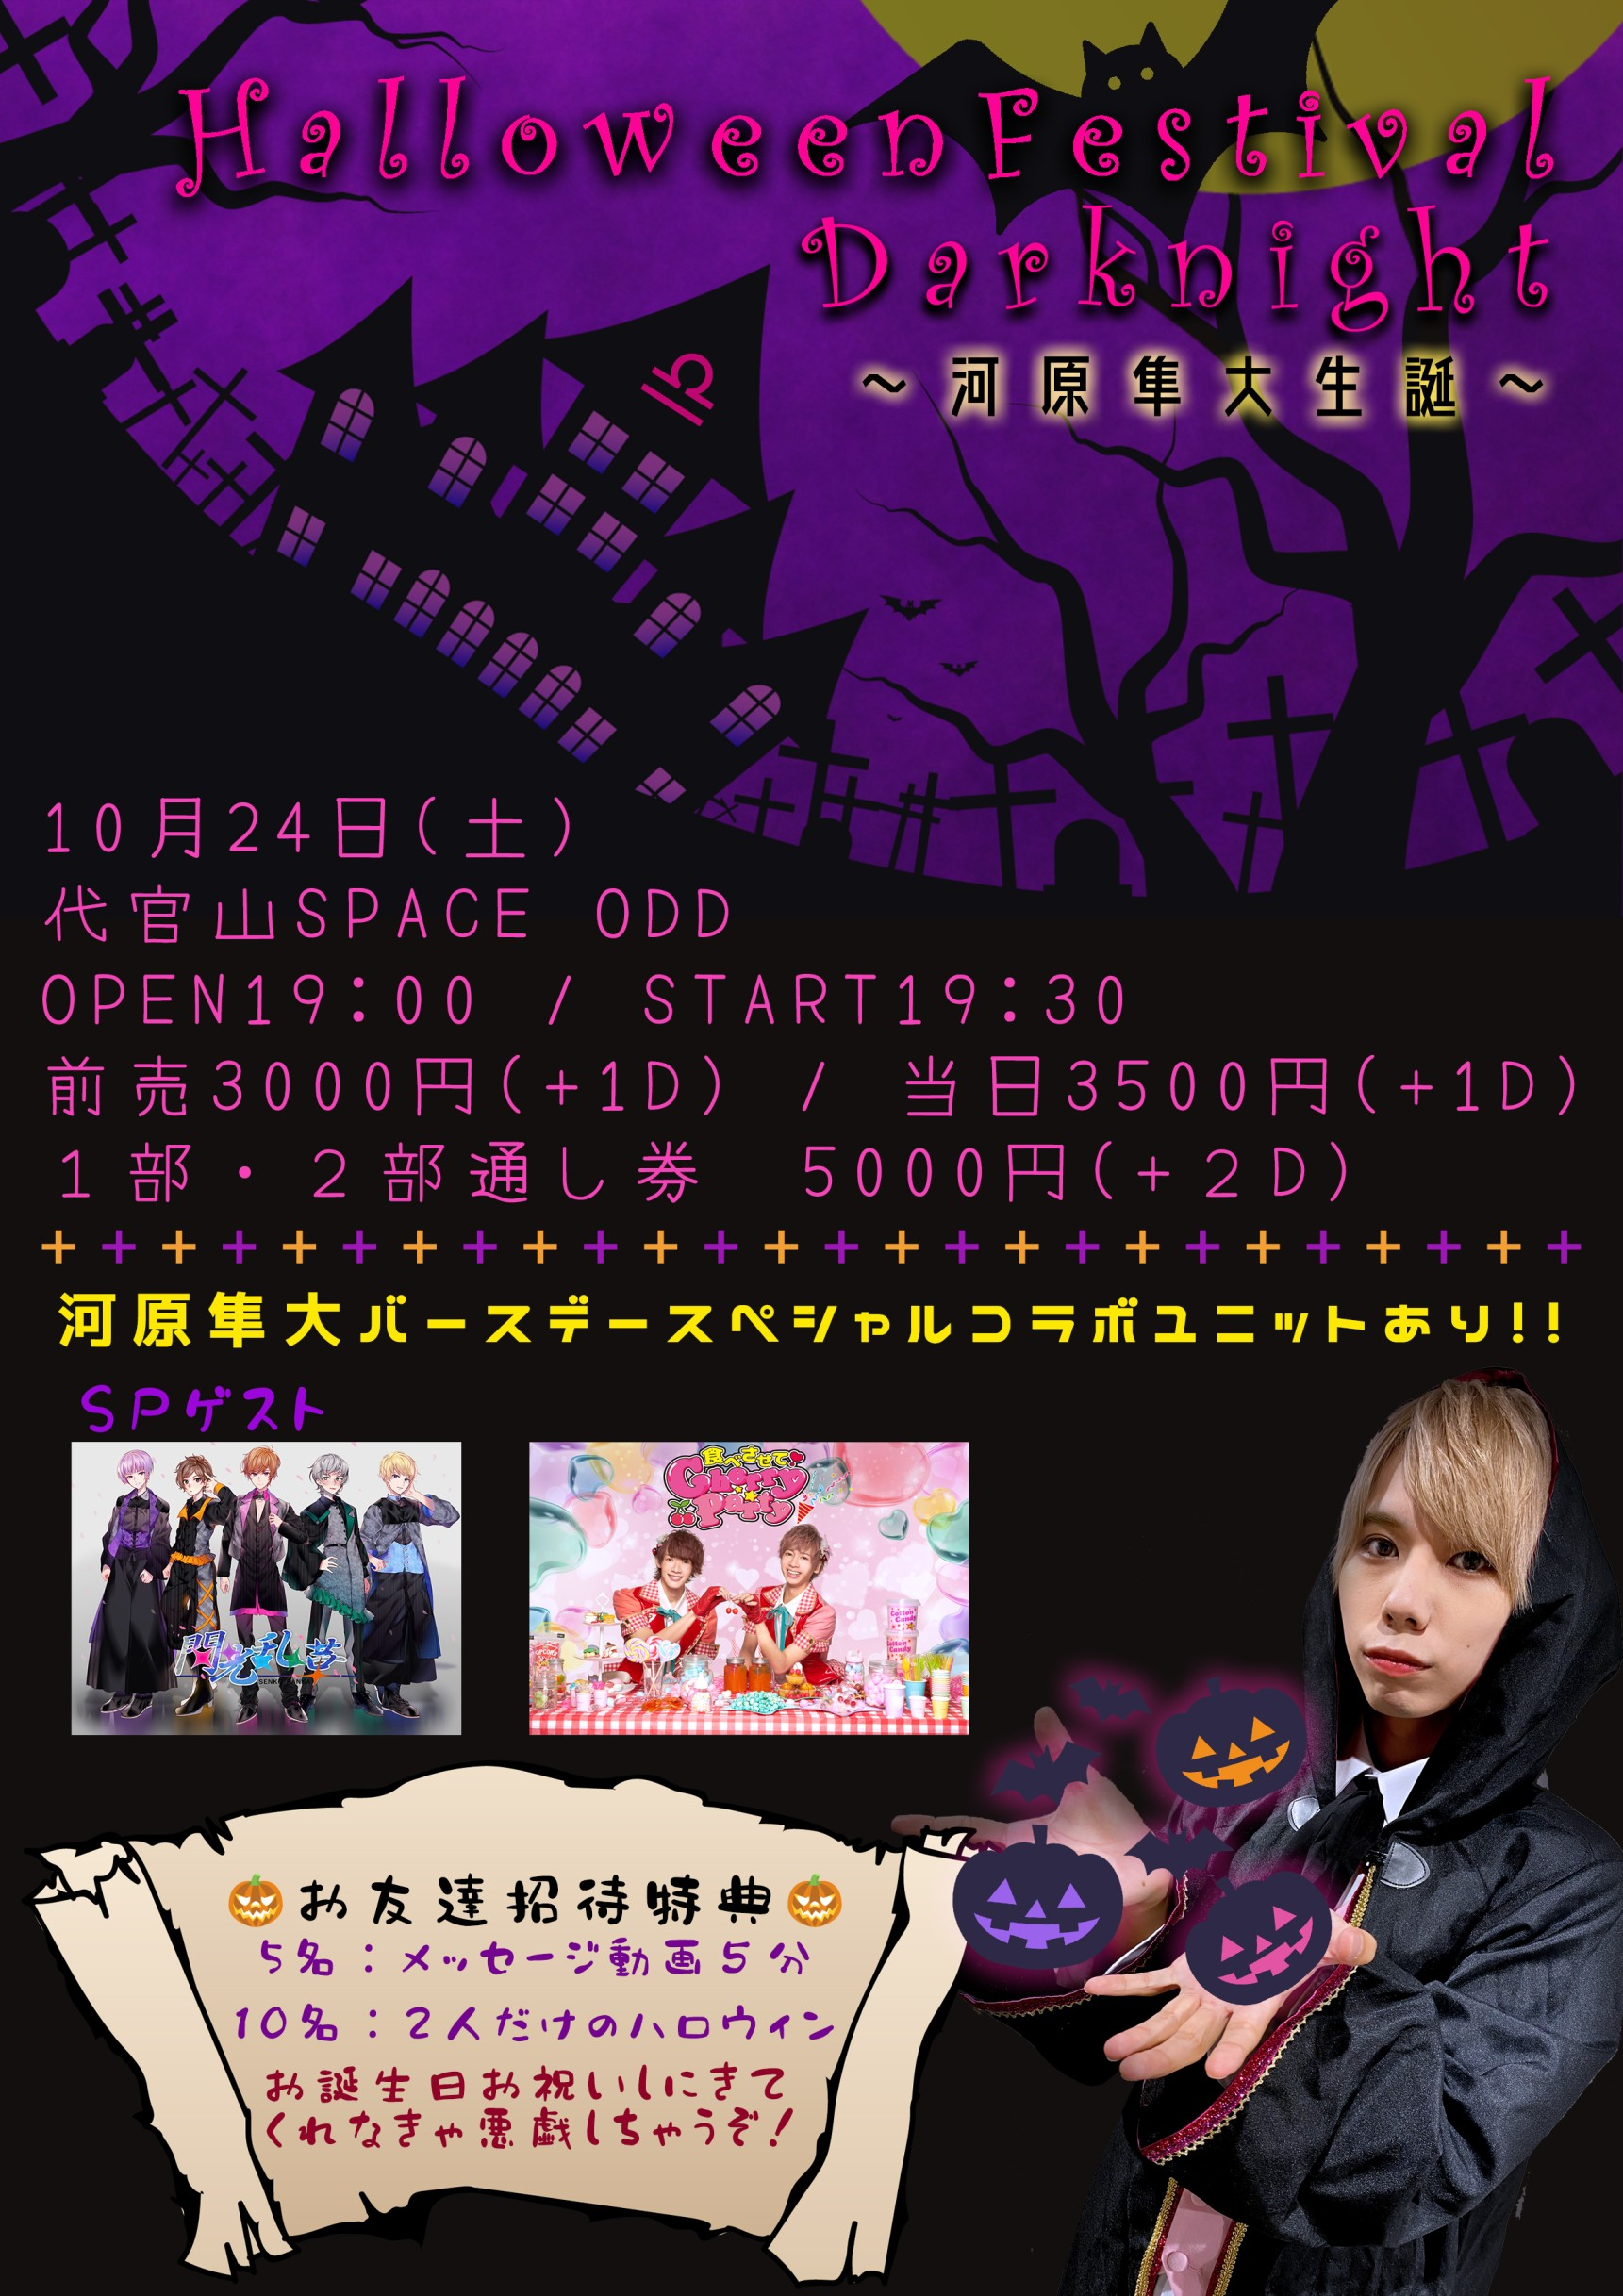 HalloweenFestival~Darknight~